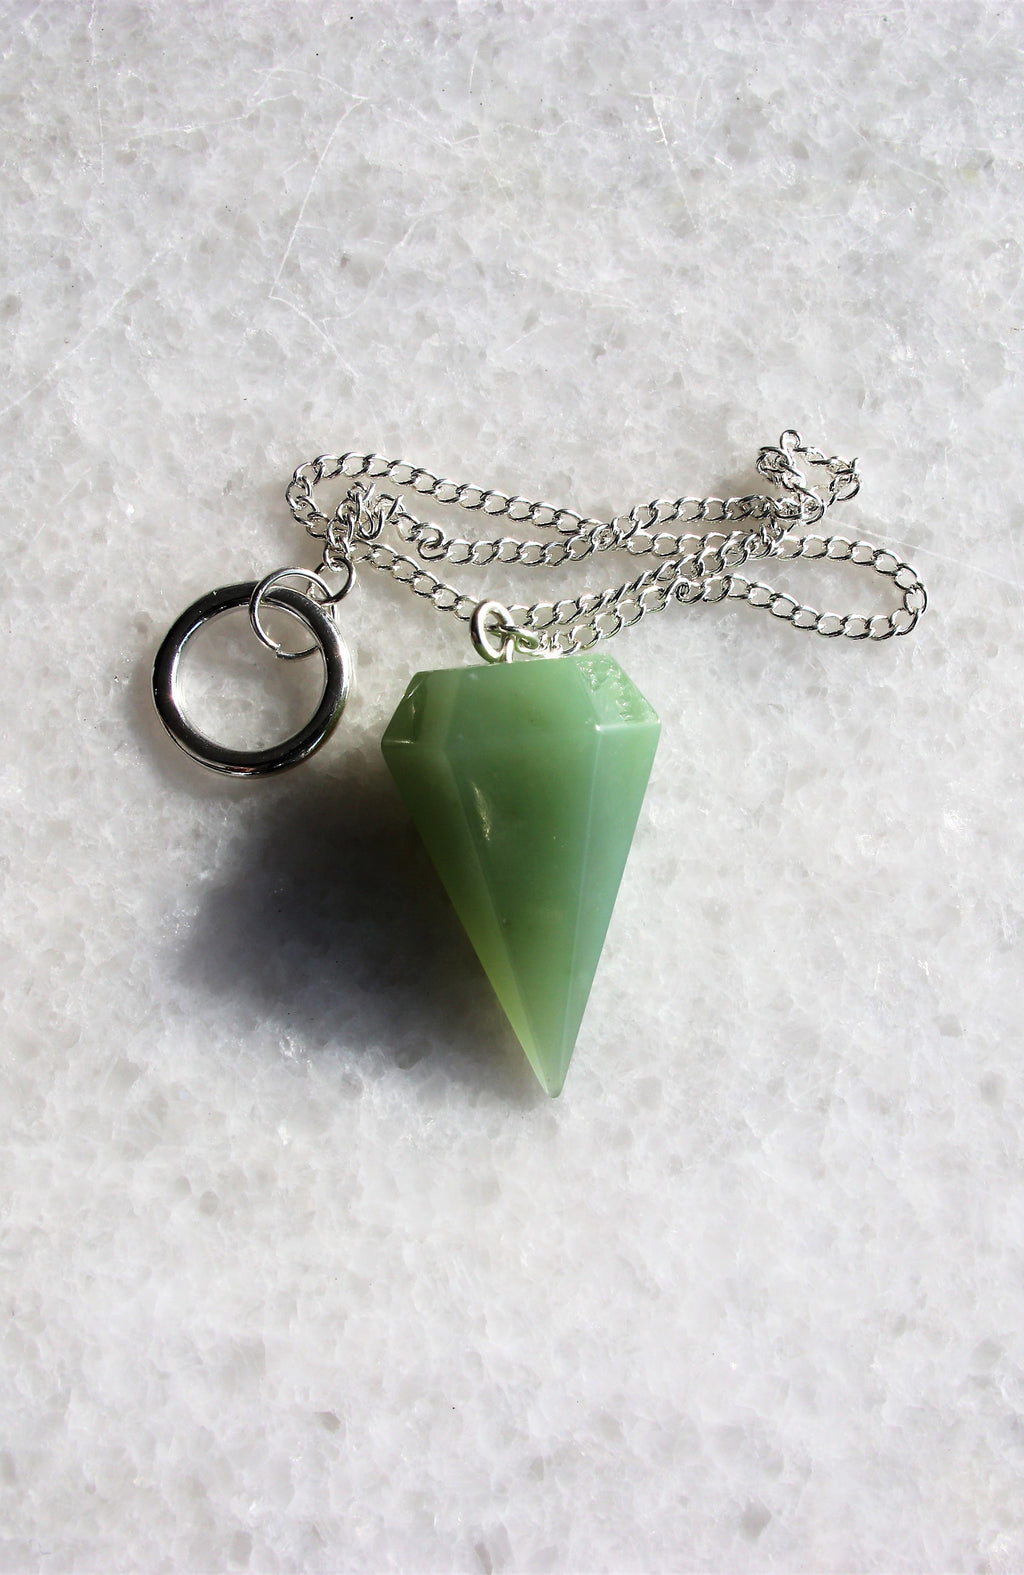 New Jade (Bowenite) Pendulum